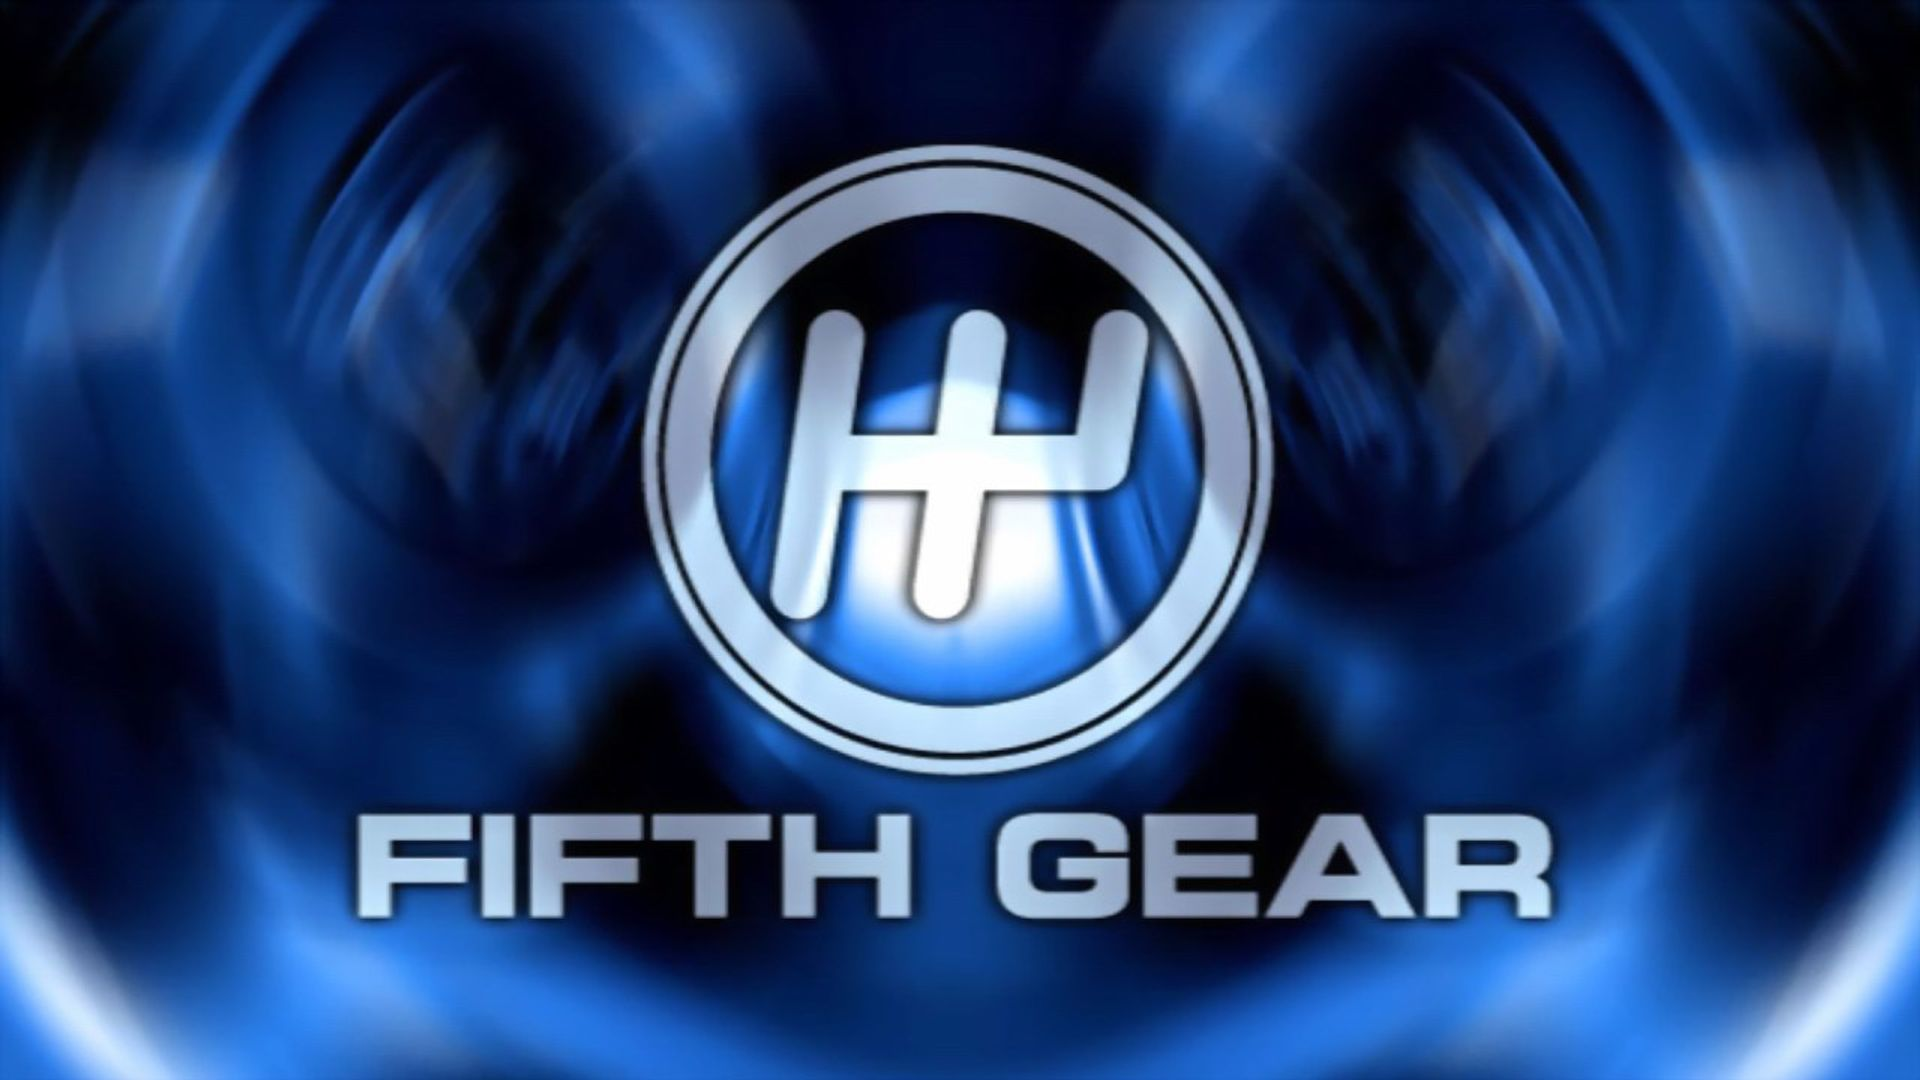 Fifth Gear Where To Watch Every Episode Streaming Online